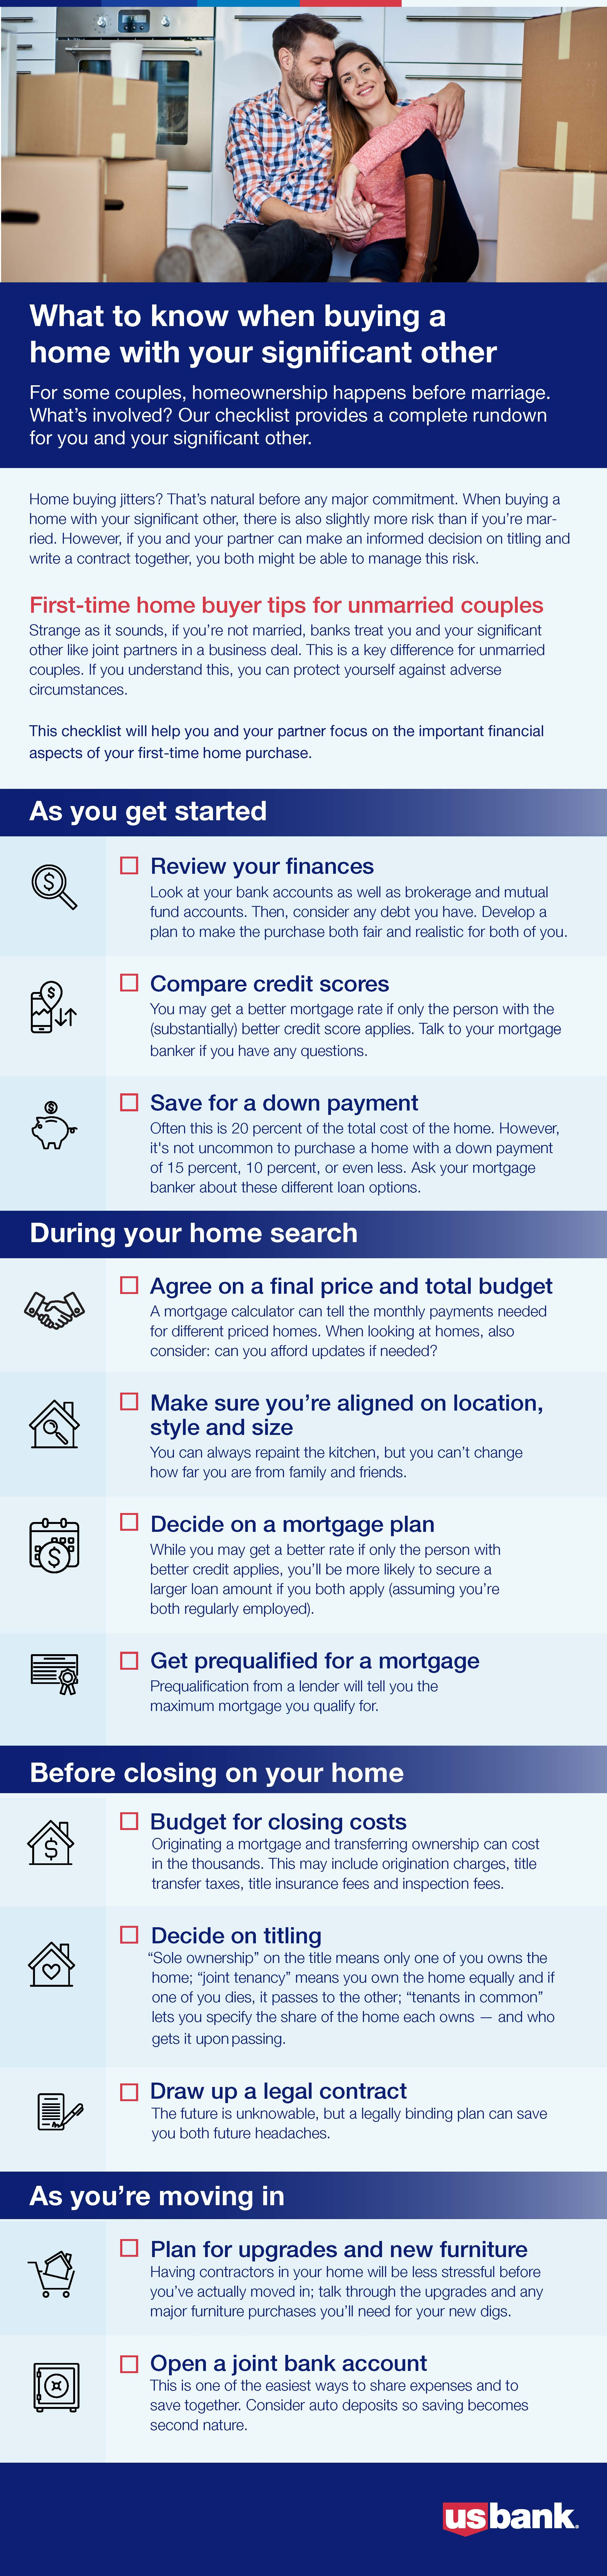 What to know when buying a house with your significant other - infographic